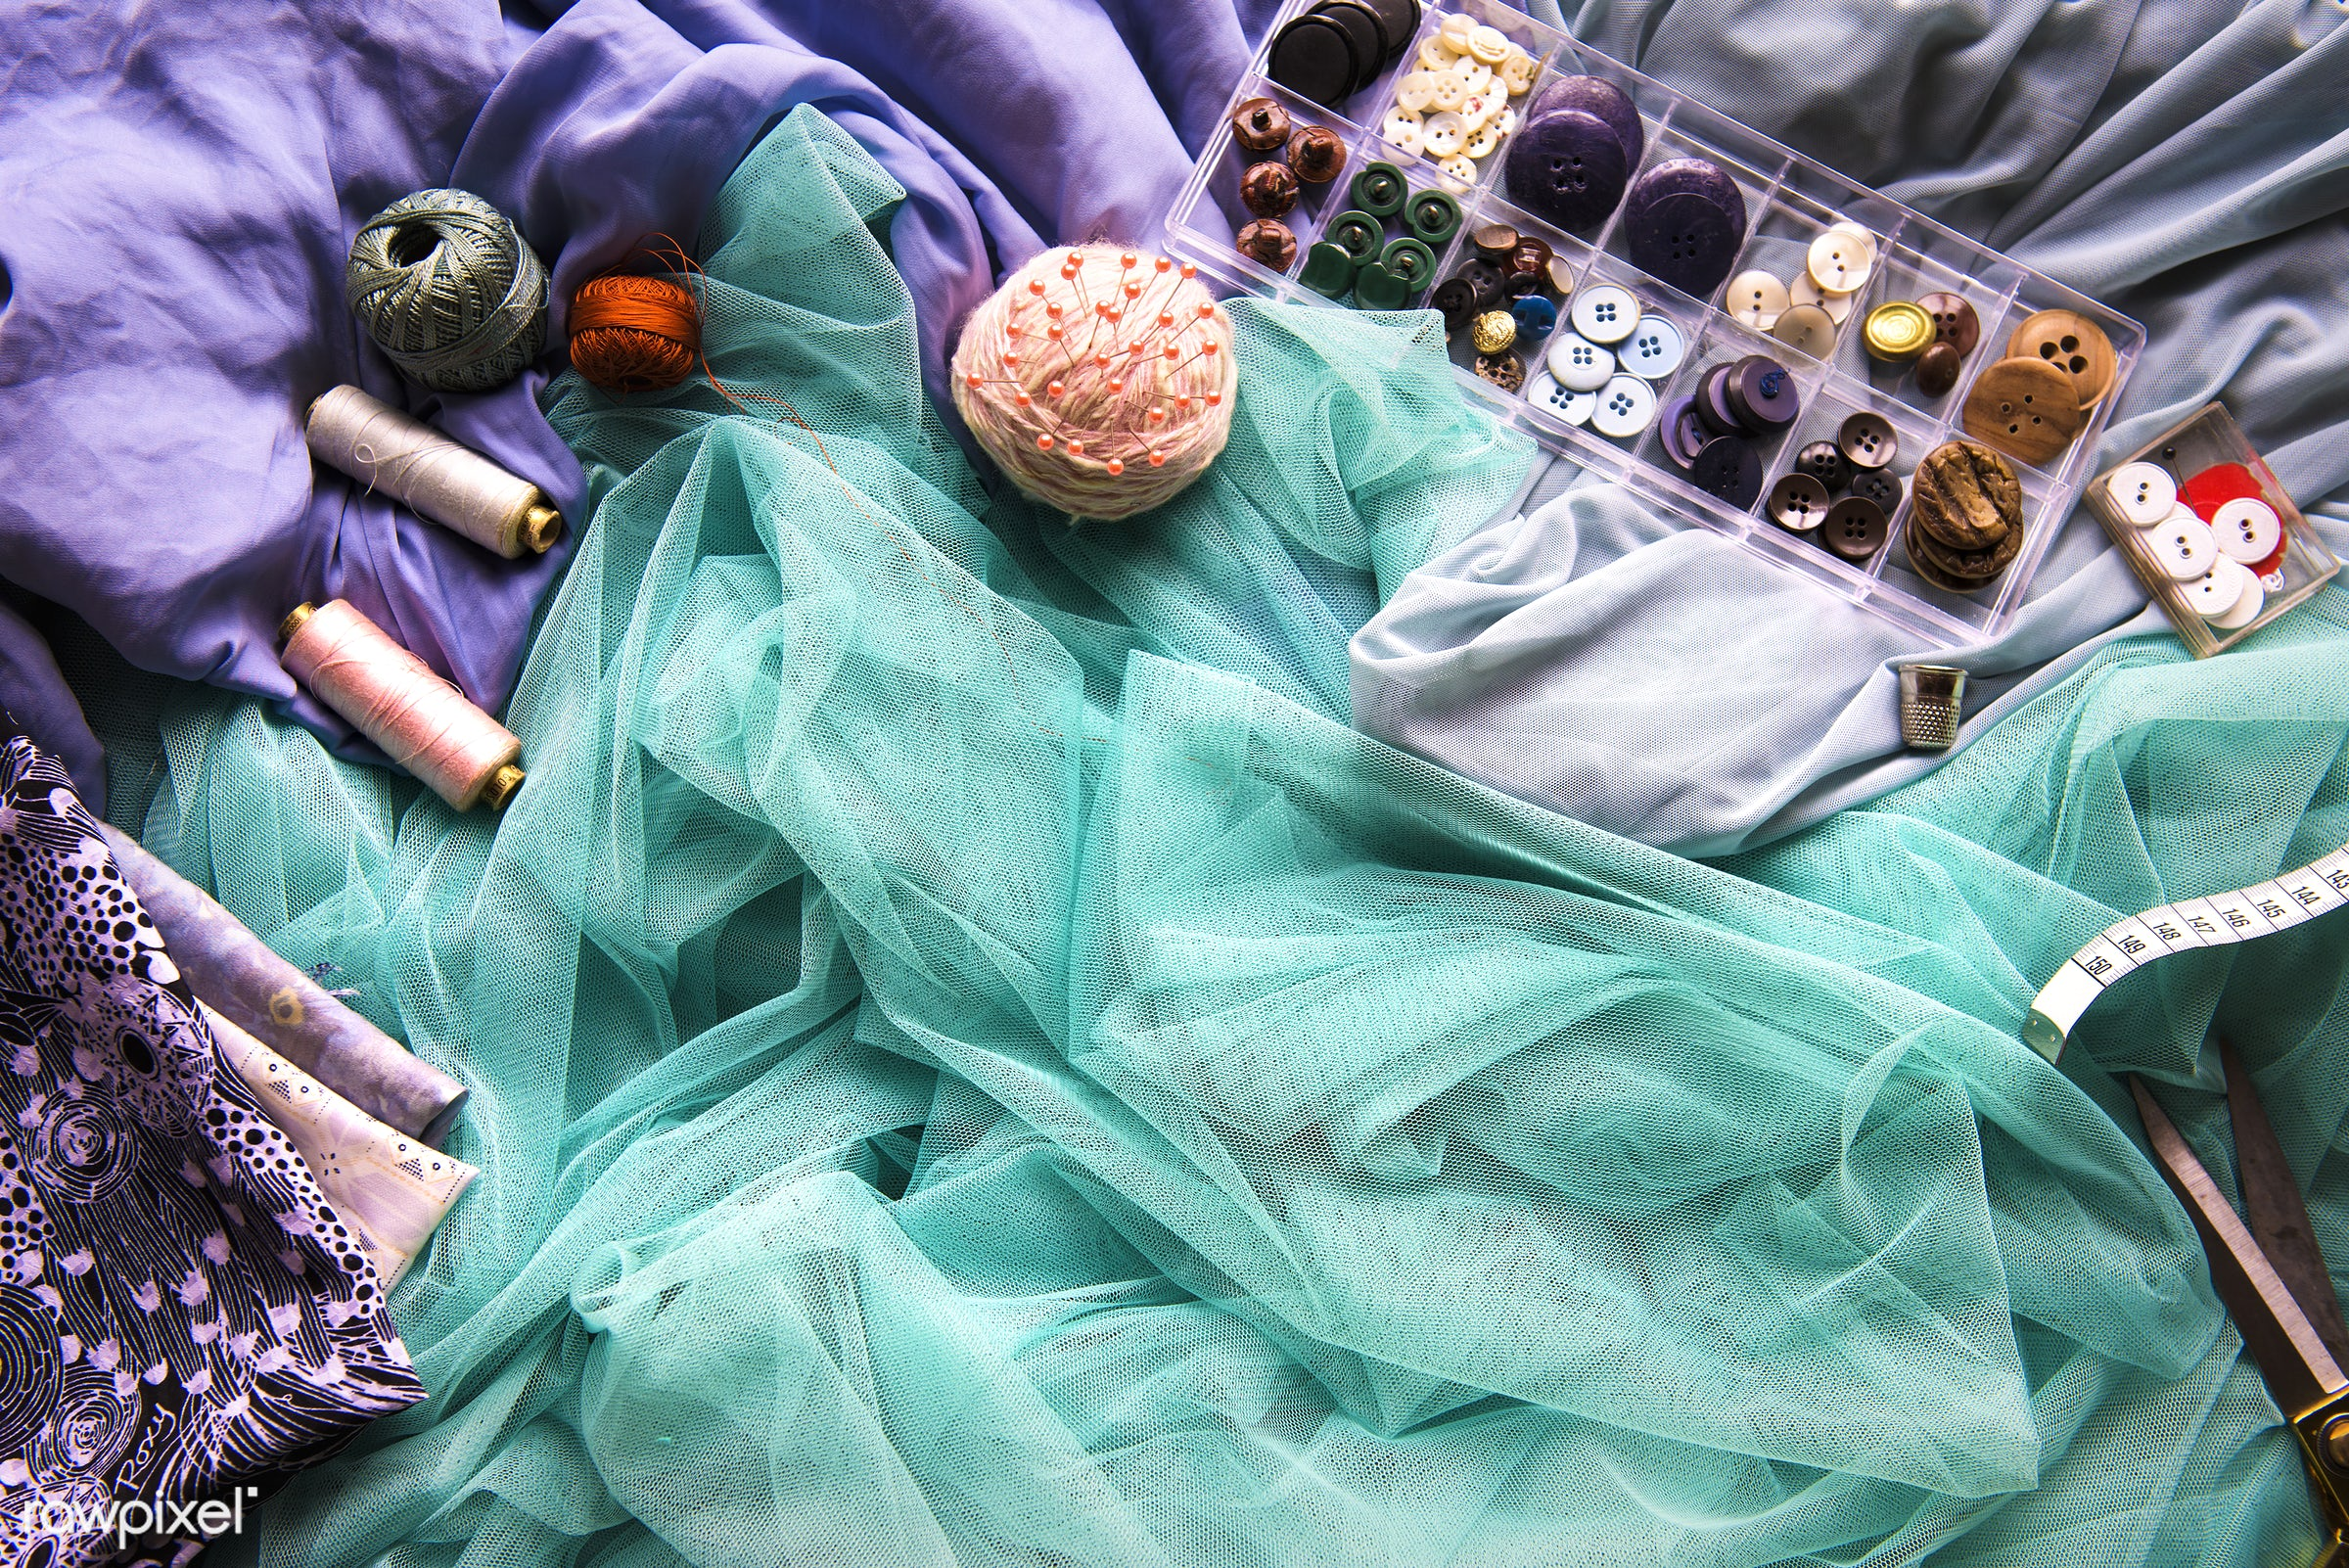 sew, craft, clothing, cotton yarn, tools, roll, cloth, accessory, thread, tailor, repair, fabric, kit, supplies, work,...